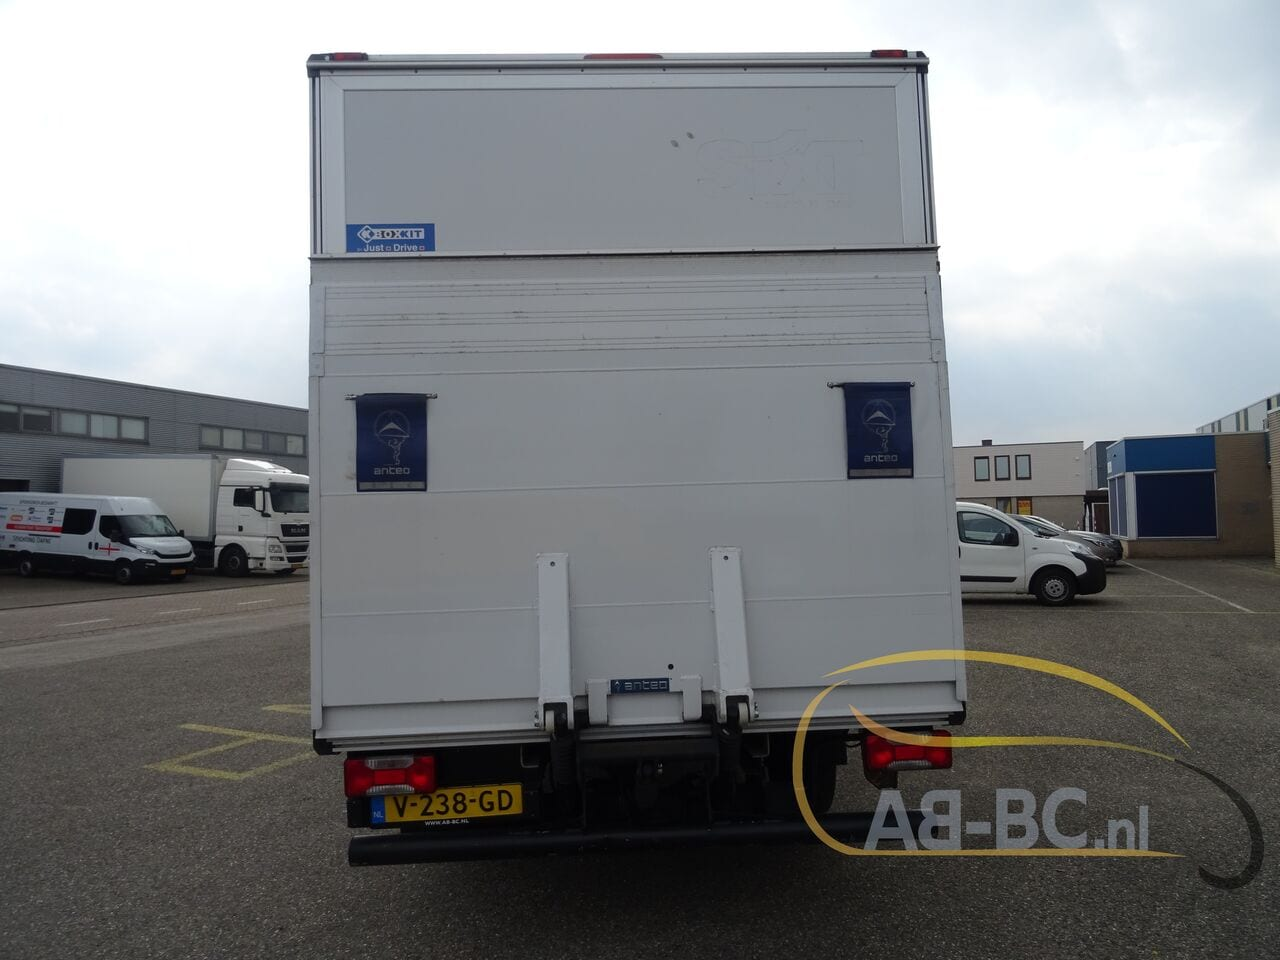 commercial-vehicle-box-truck-3-5tIVECO-Daily-35S14-EURO-6---1618842048562483913_big_6e44dc4414b39d155c93584a264f0d23--20081111411660340700